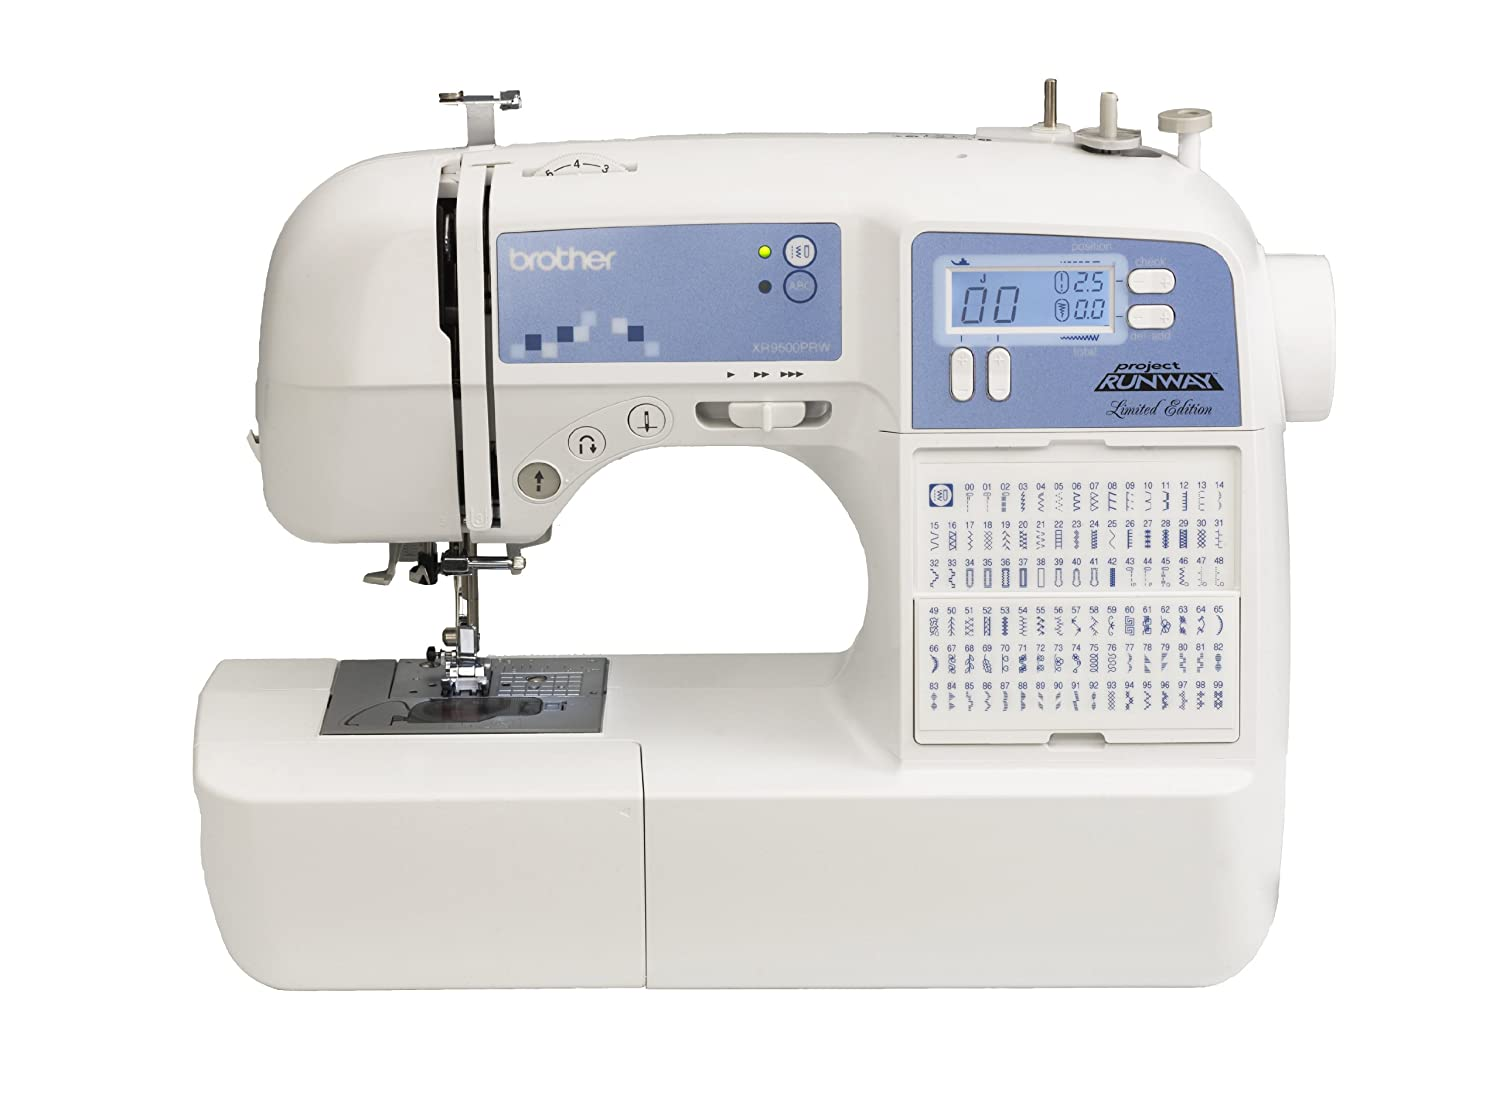 Brother-XR9500PRW-Sewing-Machine